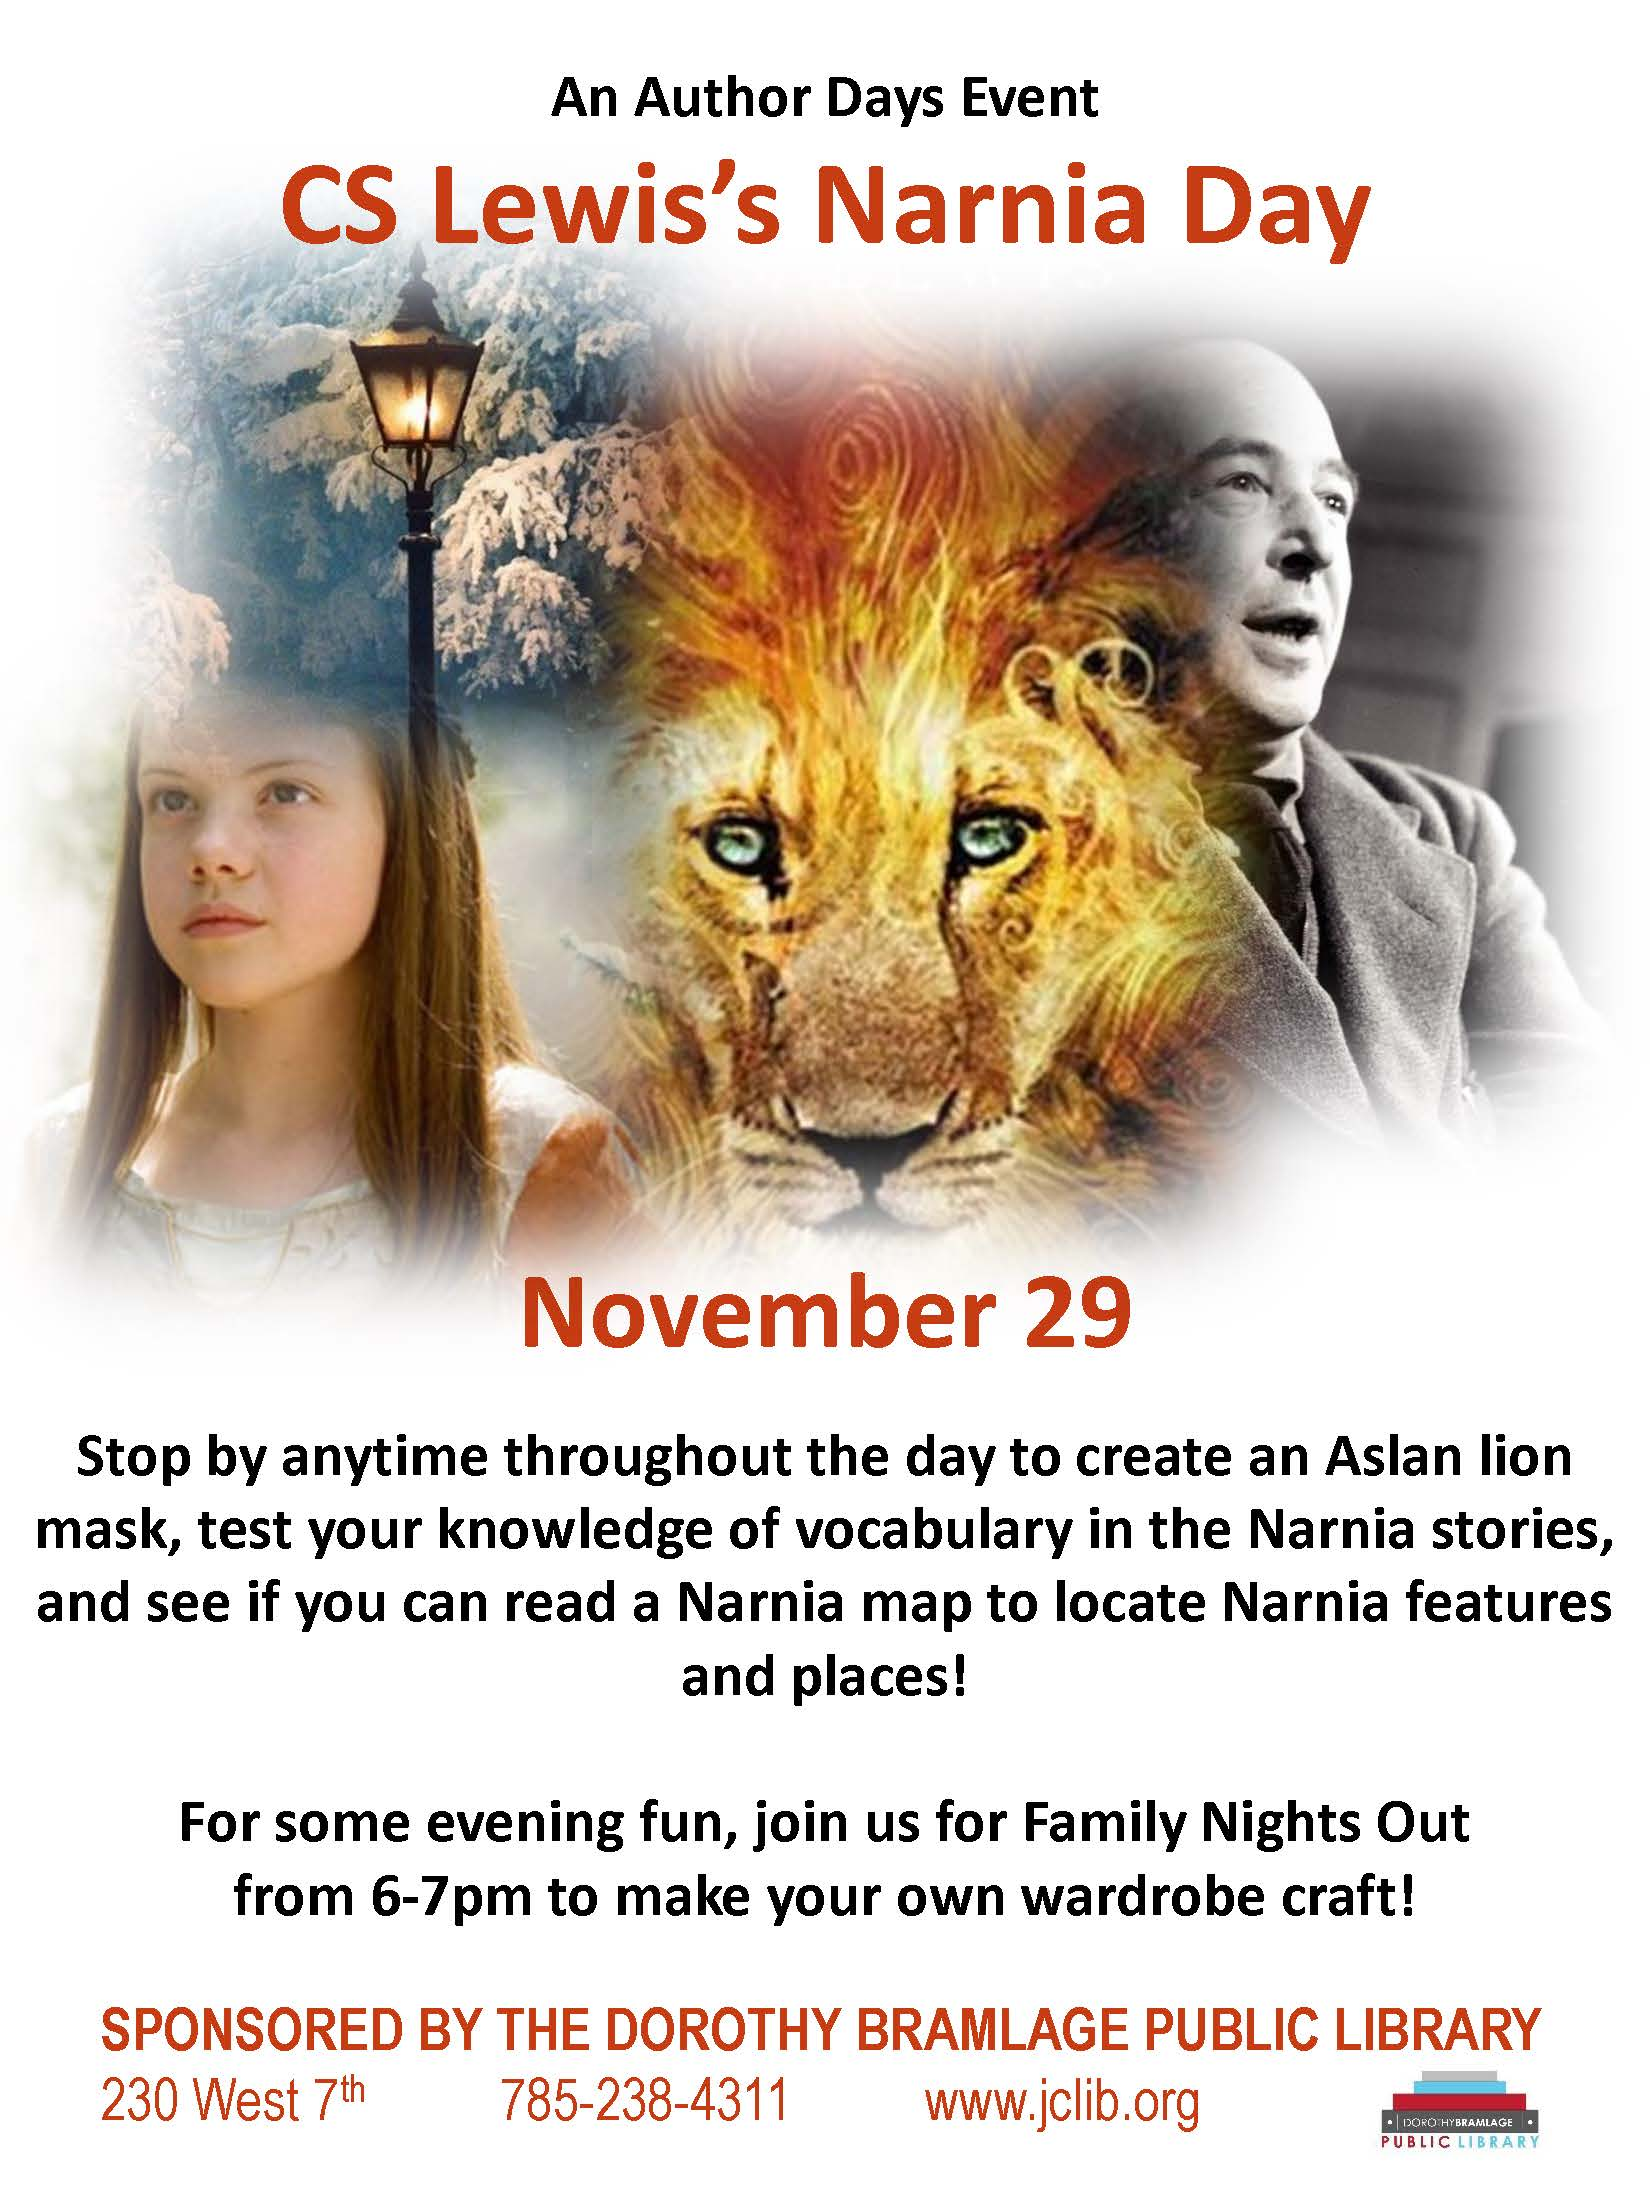 CS Lewis's Narnia Day Flyer